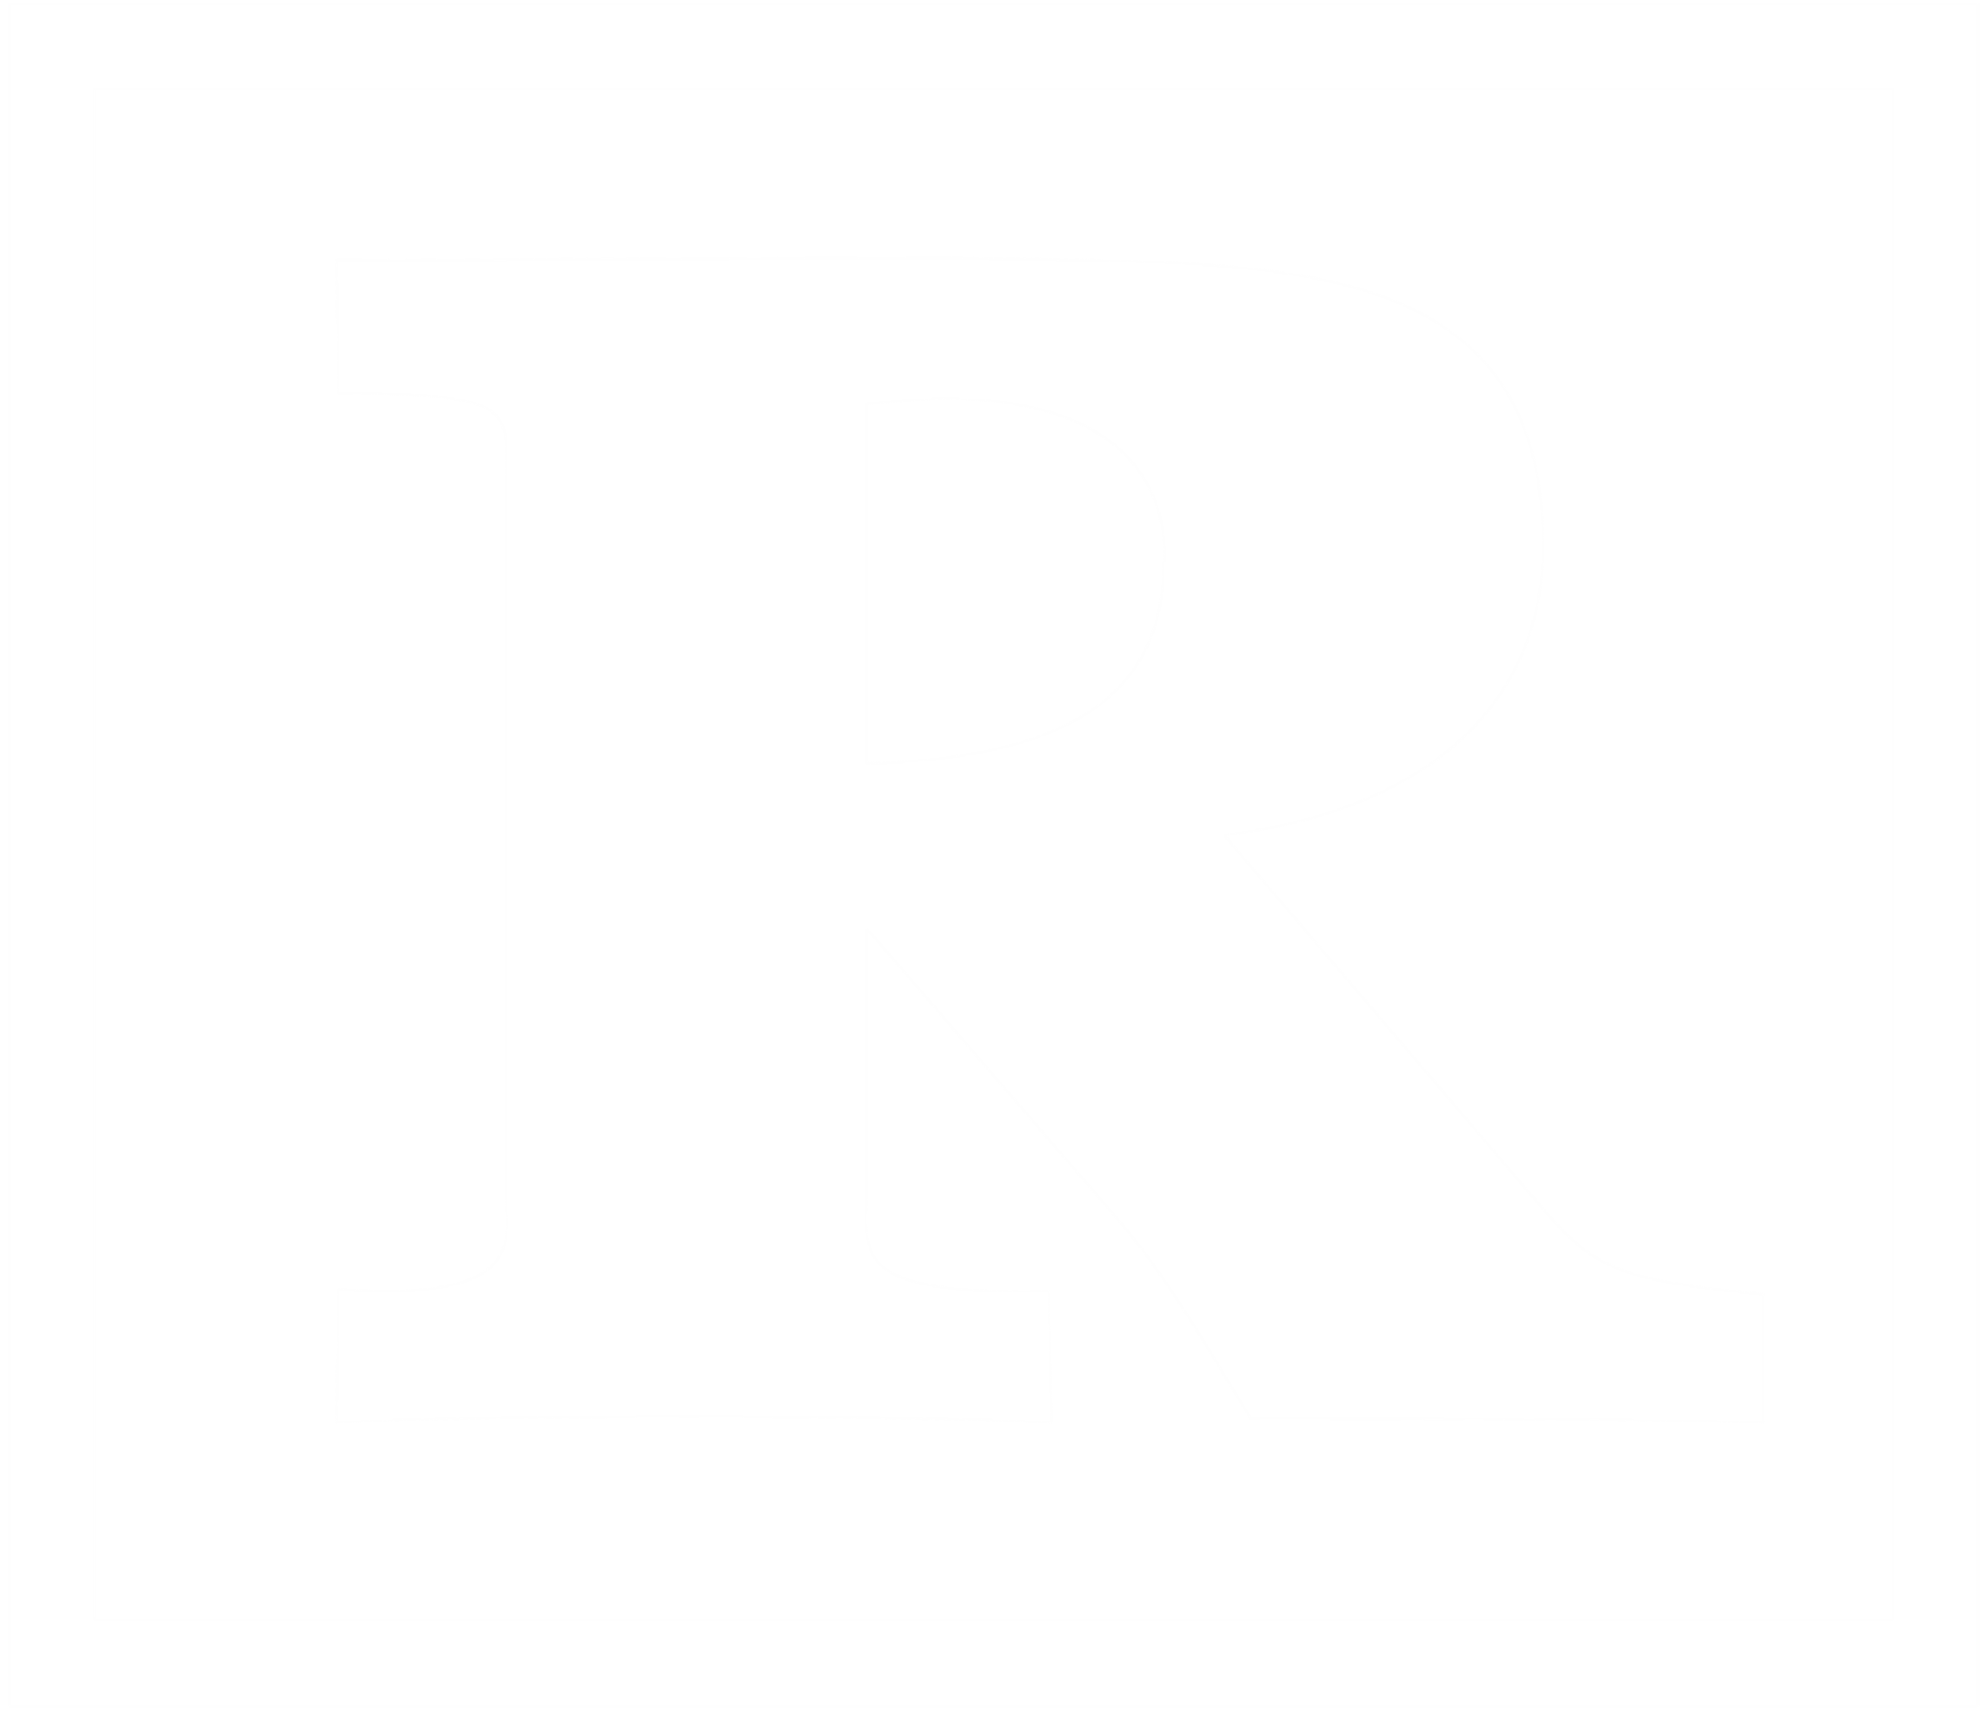 Rated r logo png. Stanley theater